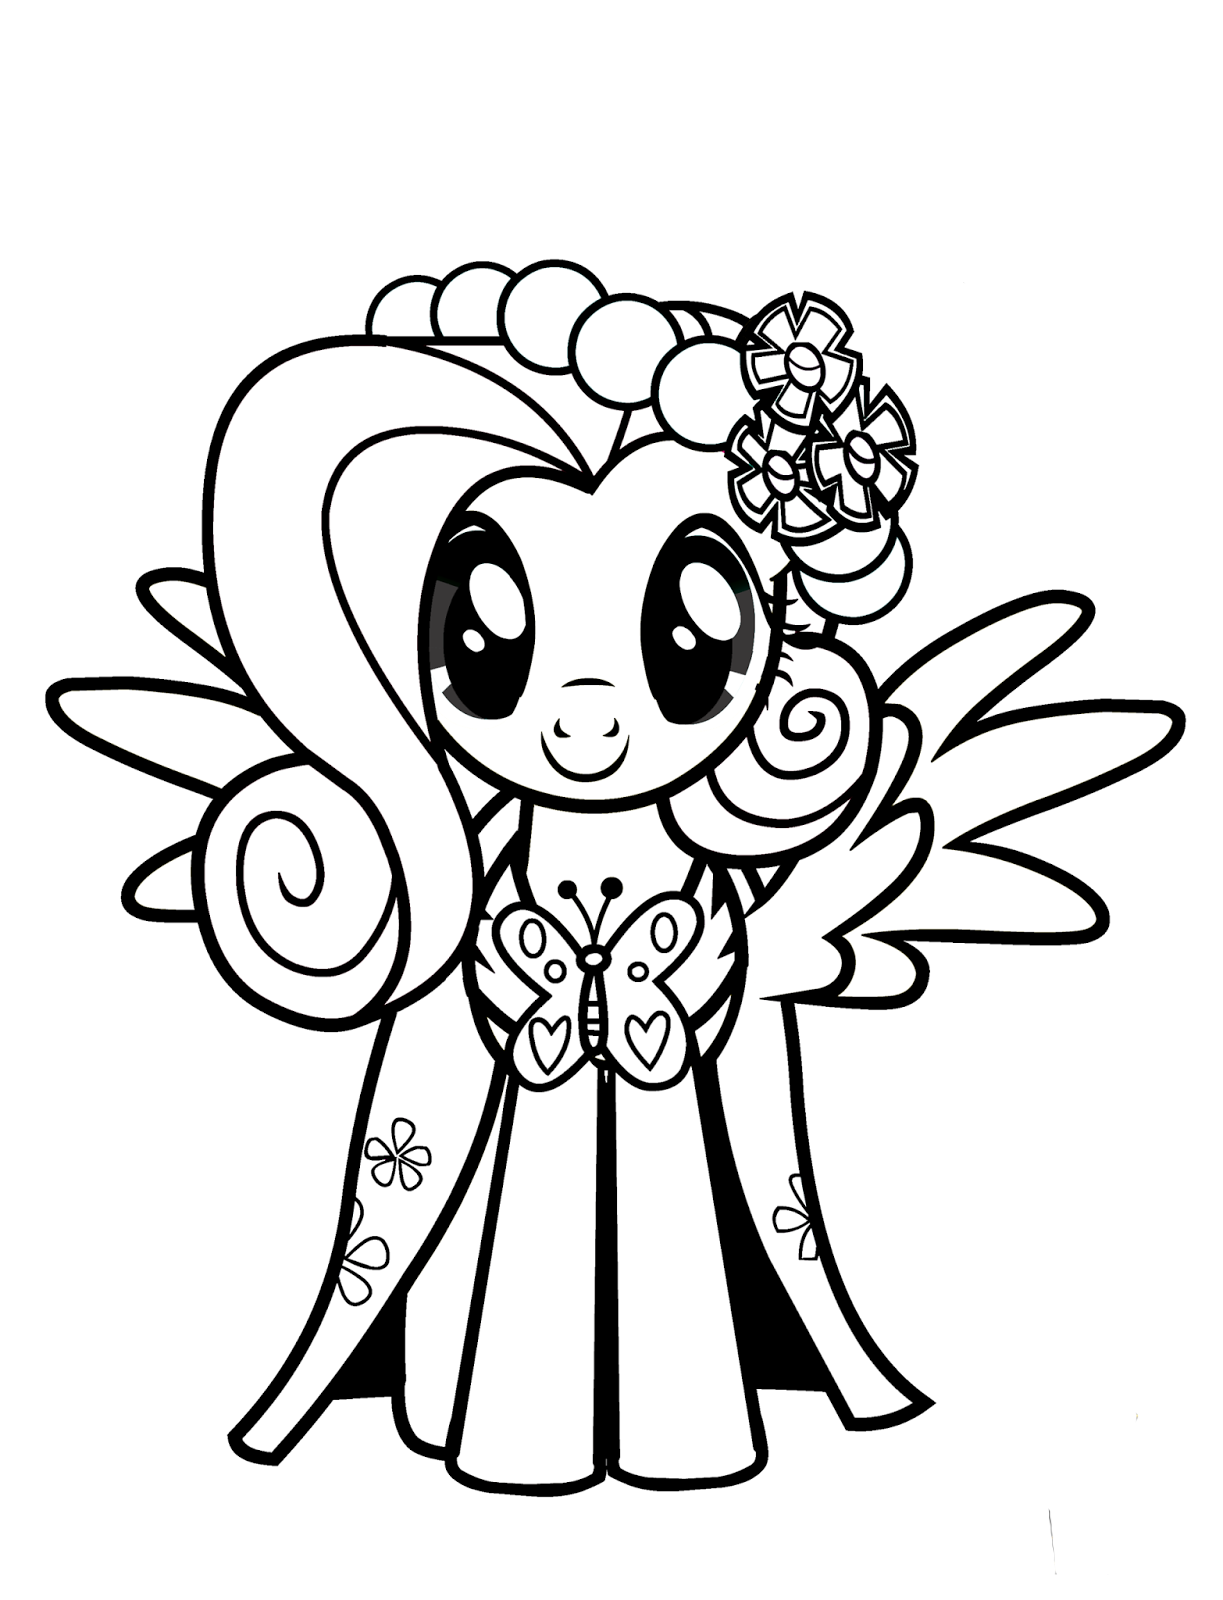 my little pony colouring pictures fluttershy coloring pages best coloring pages for kids my little pictures colouring pony